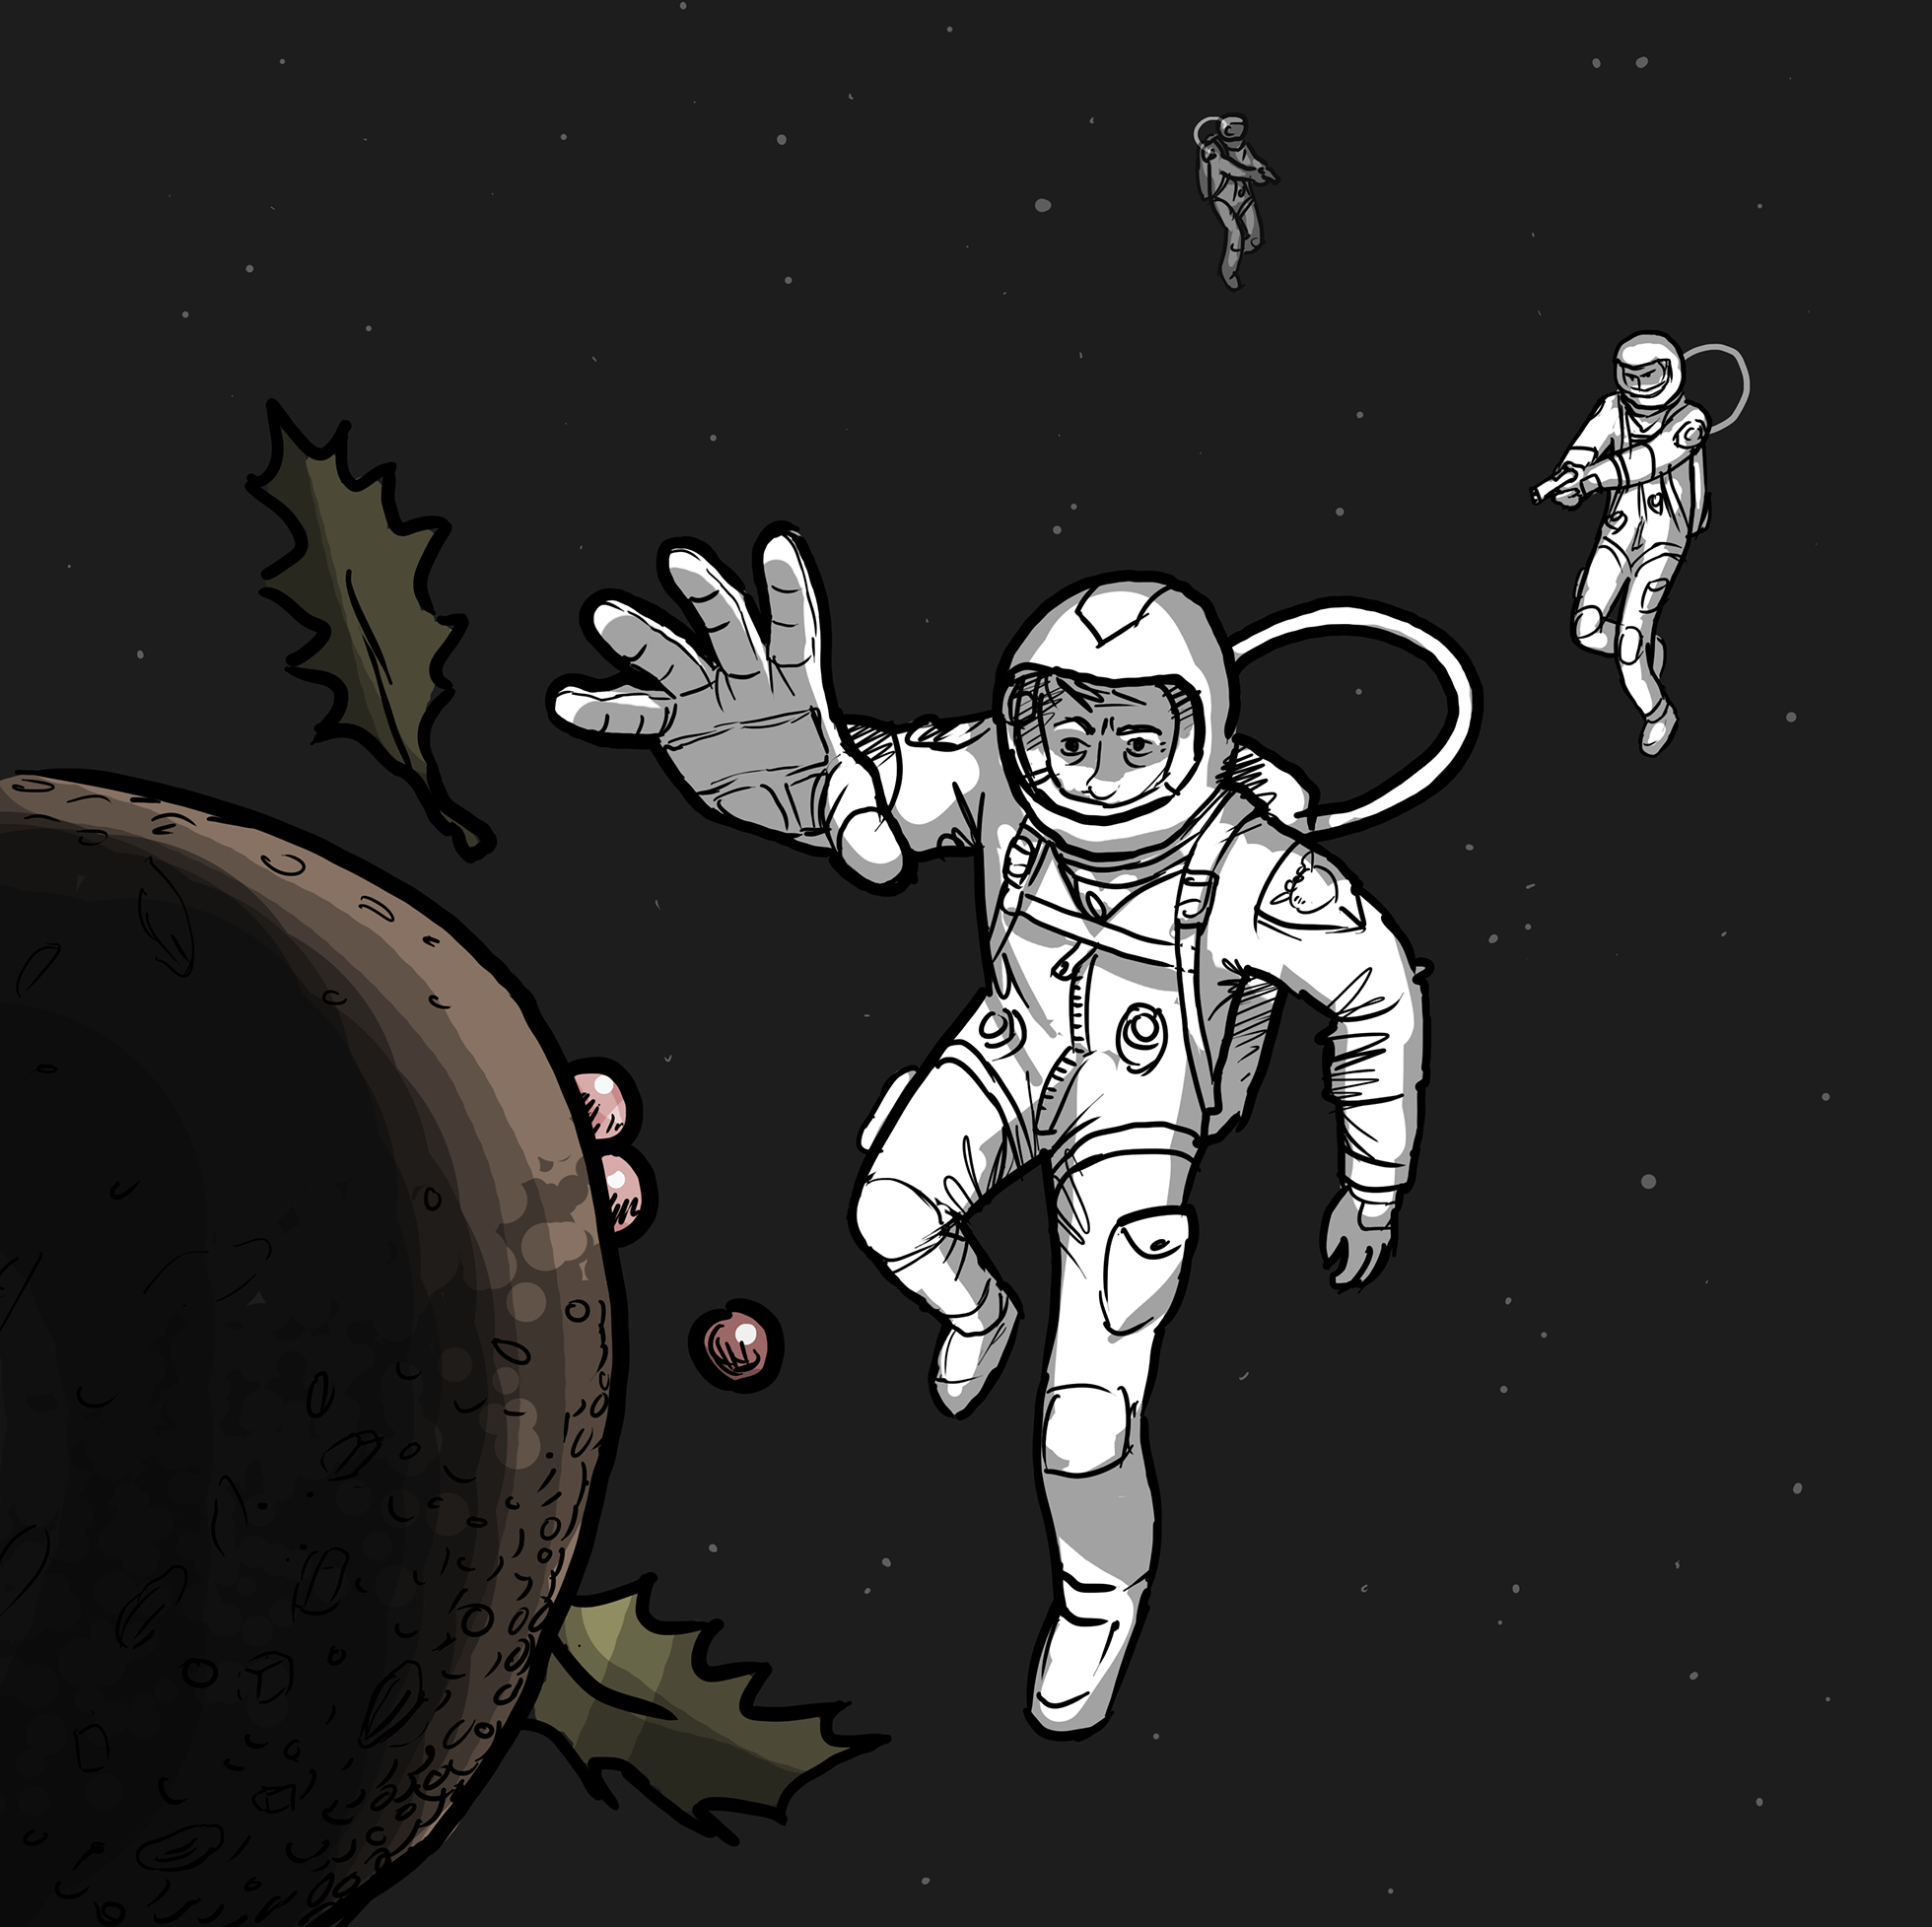 Astronaut reaching